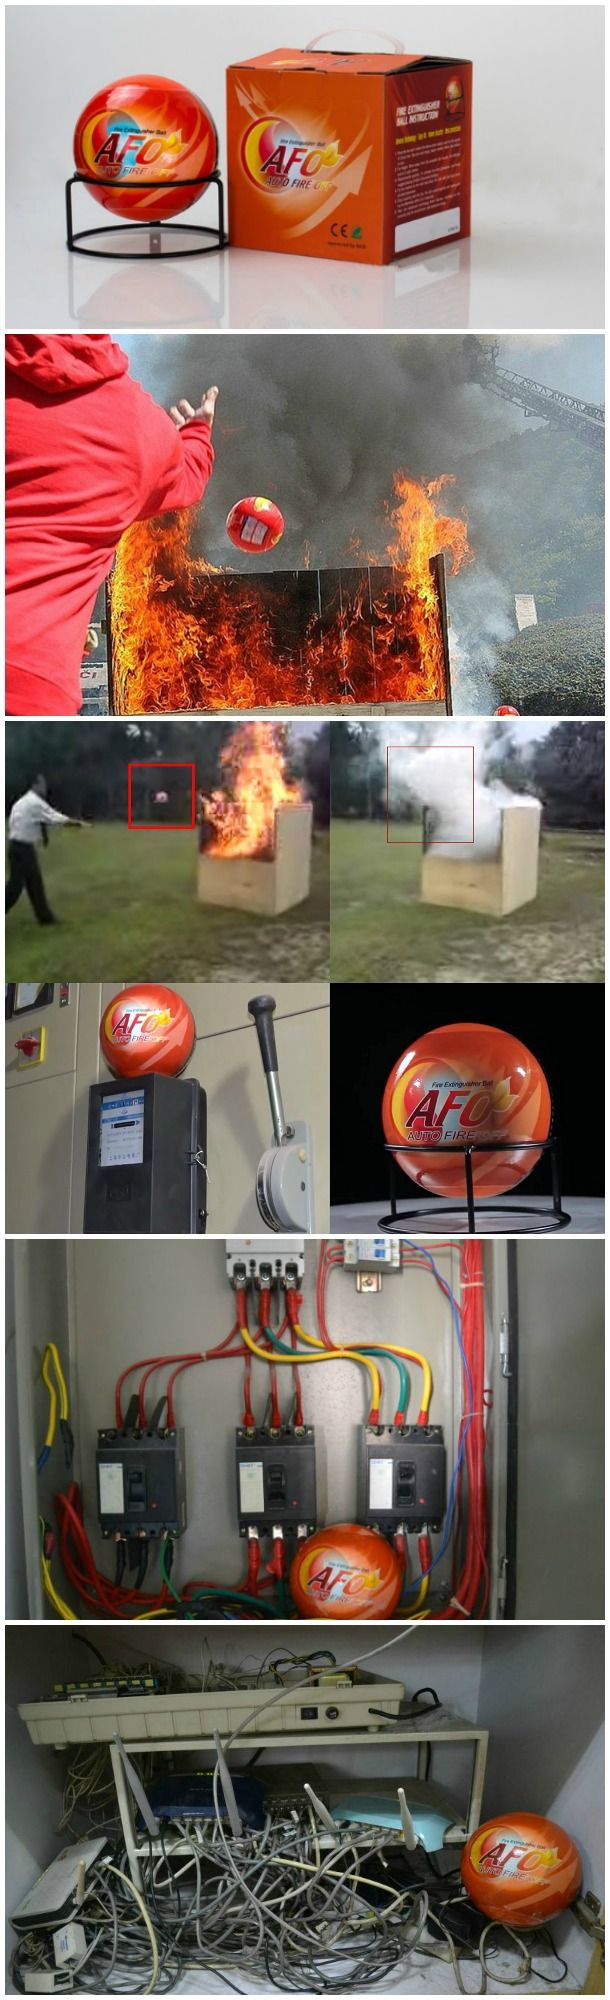 AFO Fireball is the easy to use fire suppression device that self activates upon contact with fire, has a built-in fire alarm and environmentally friendly.